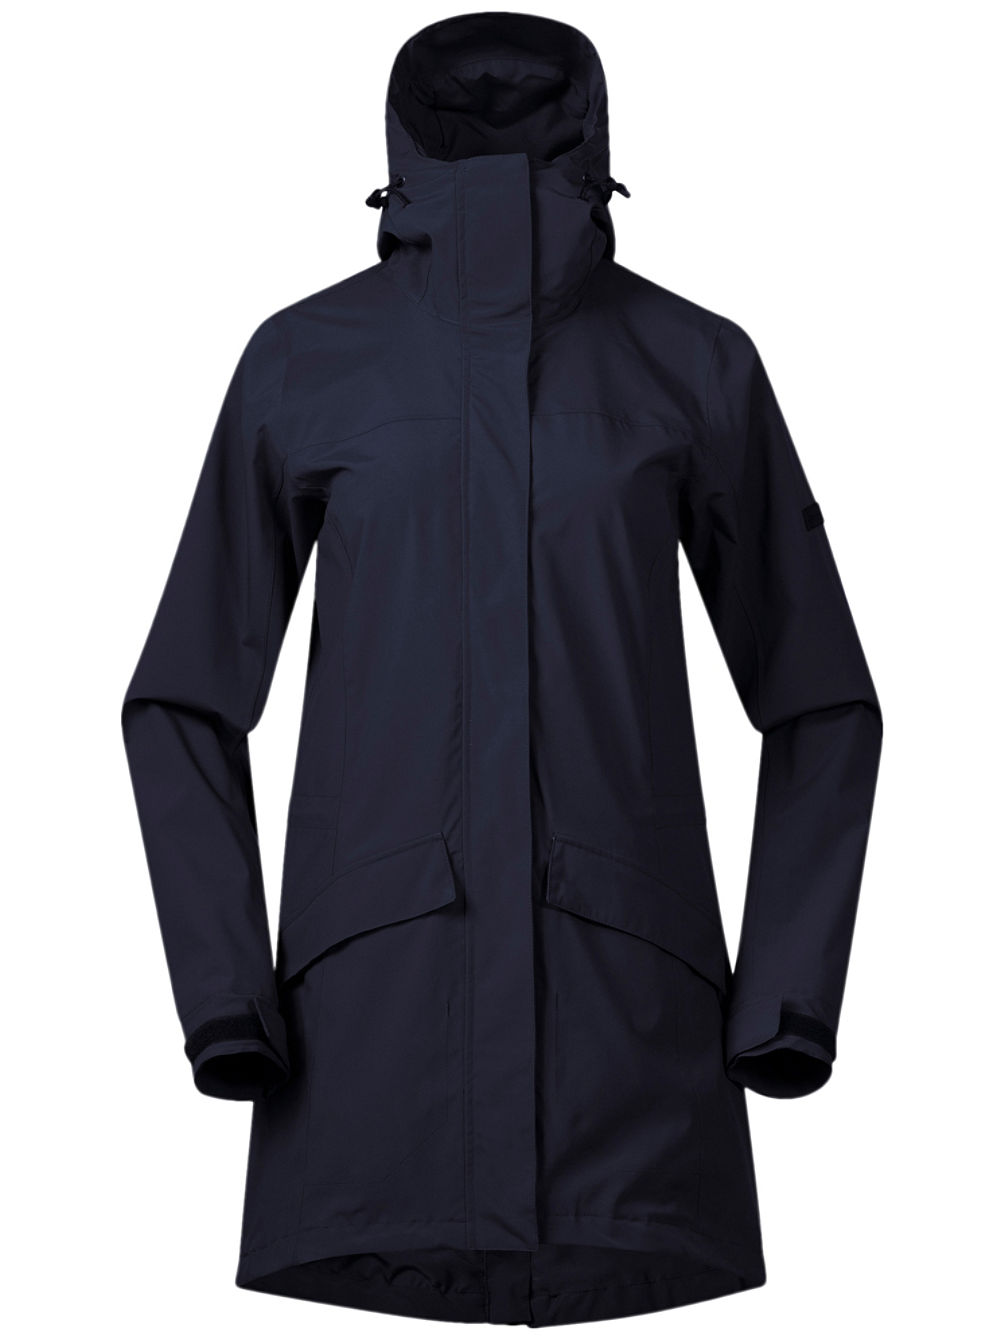 6ab2fef7819 Buy Bergans Oslo 2L Outdoor Jacket online at Blue Tomato